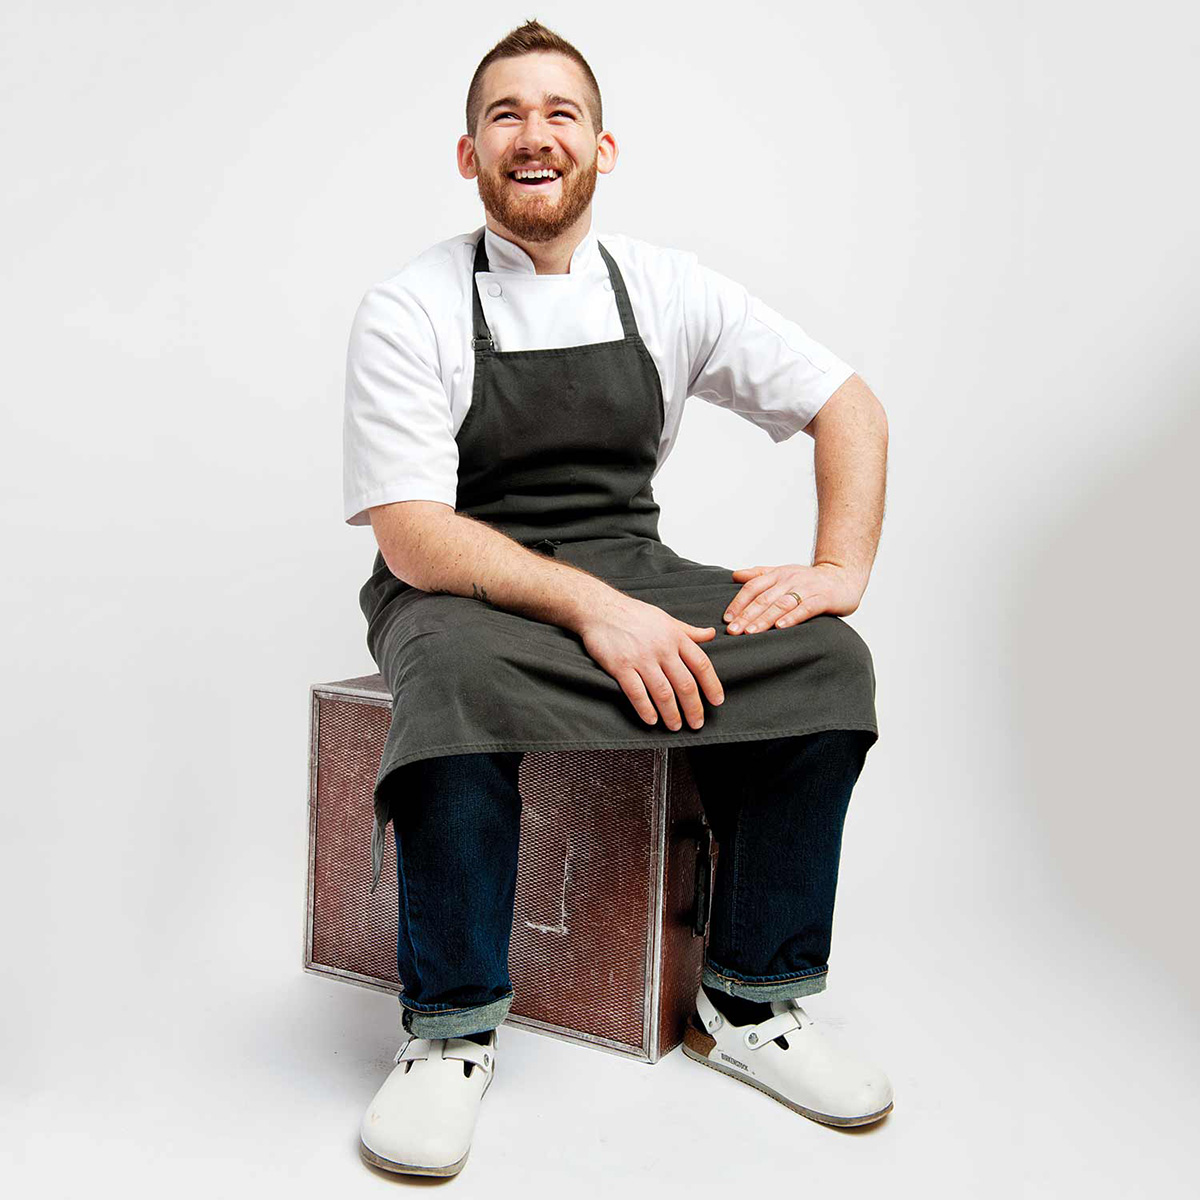 """Chef John da Silva of Spoke. / Photo by Webb Chappell for """"Best of Boston 2015 Best Chef Up-and-Coming."""""""